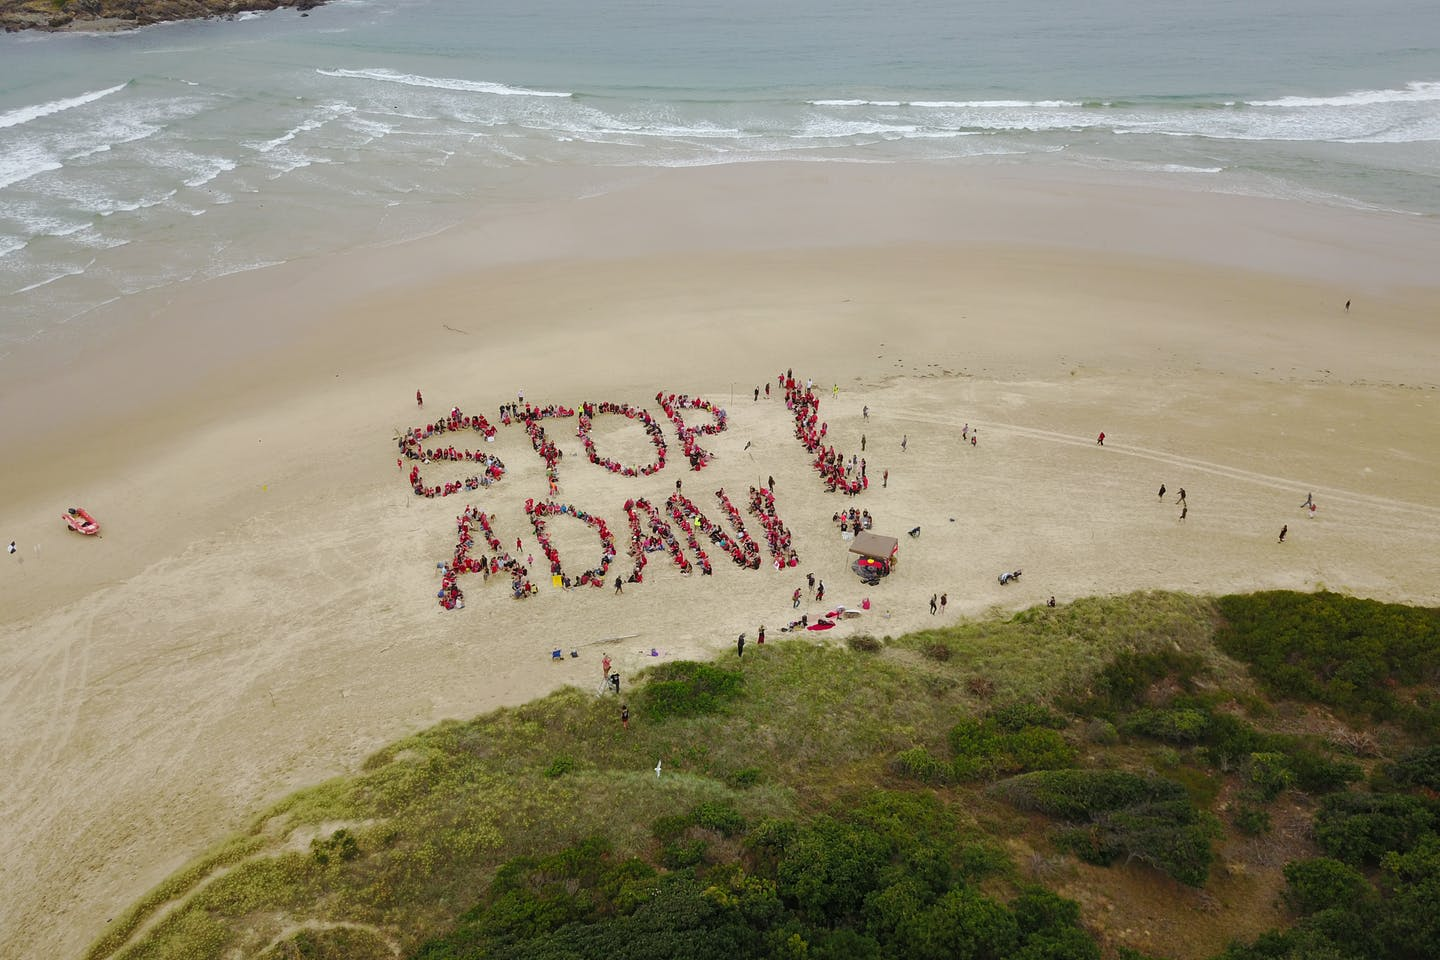 A drone image from the Stop Adani campaign at Coffs Harbour, New South Wales, Australia.